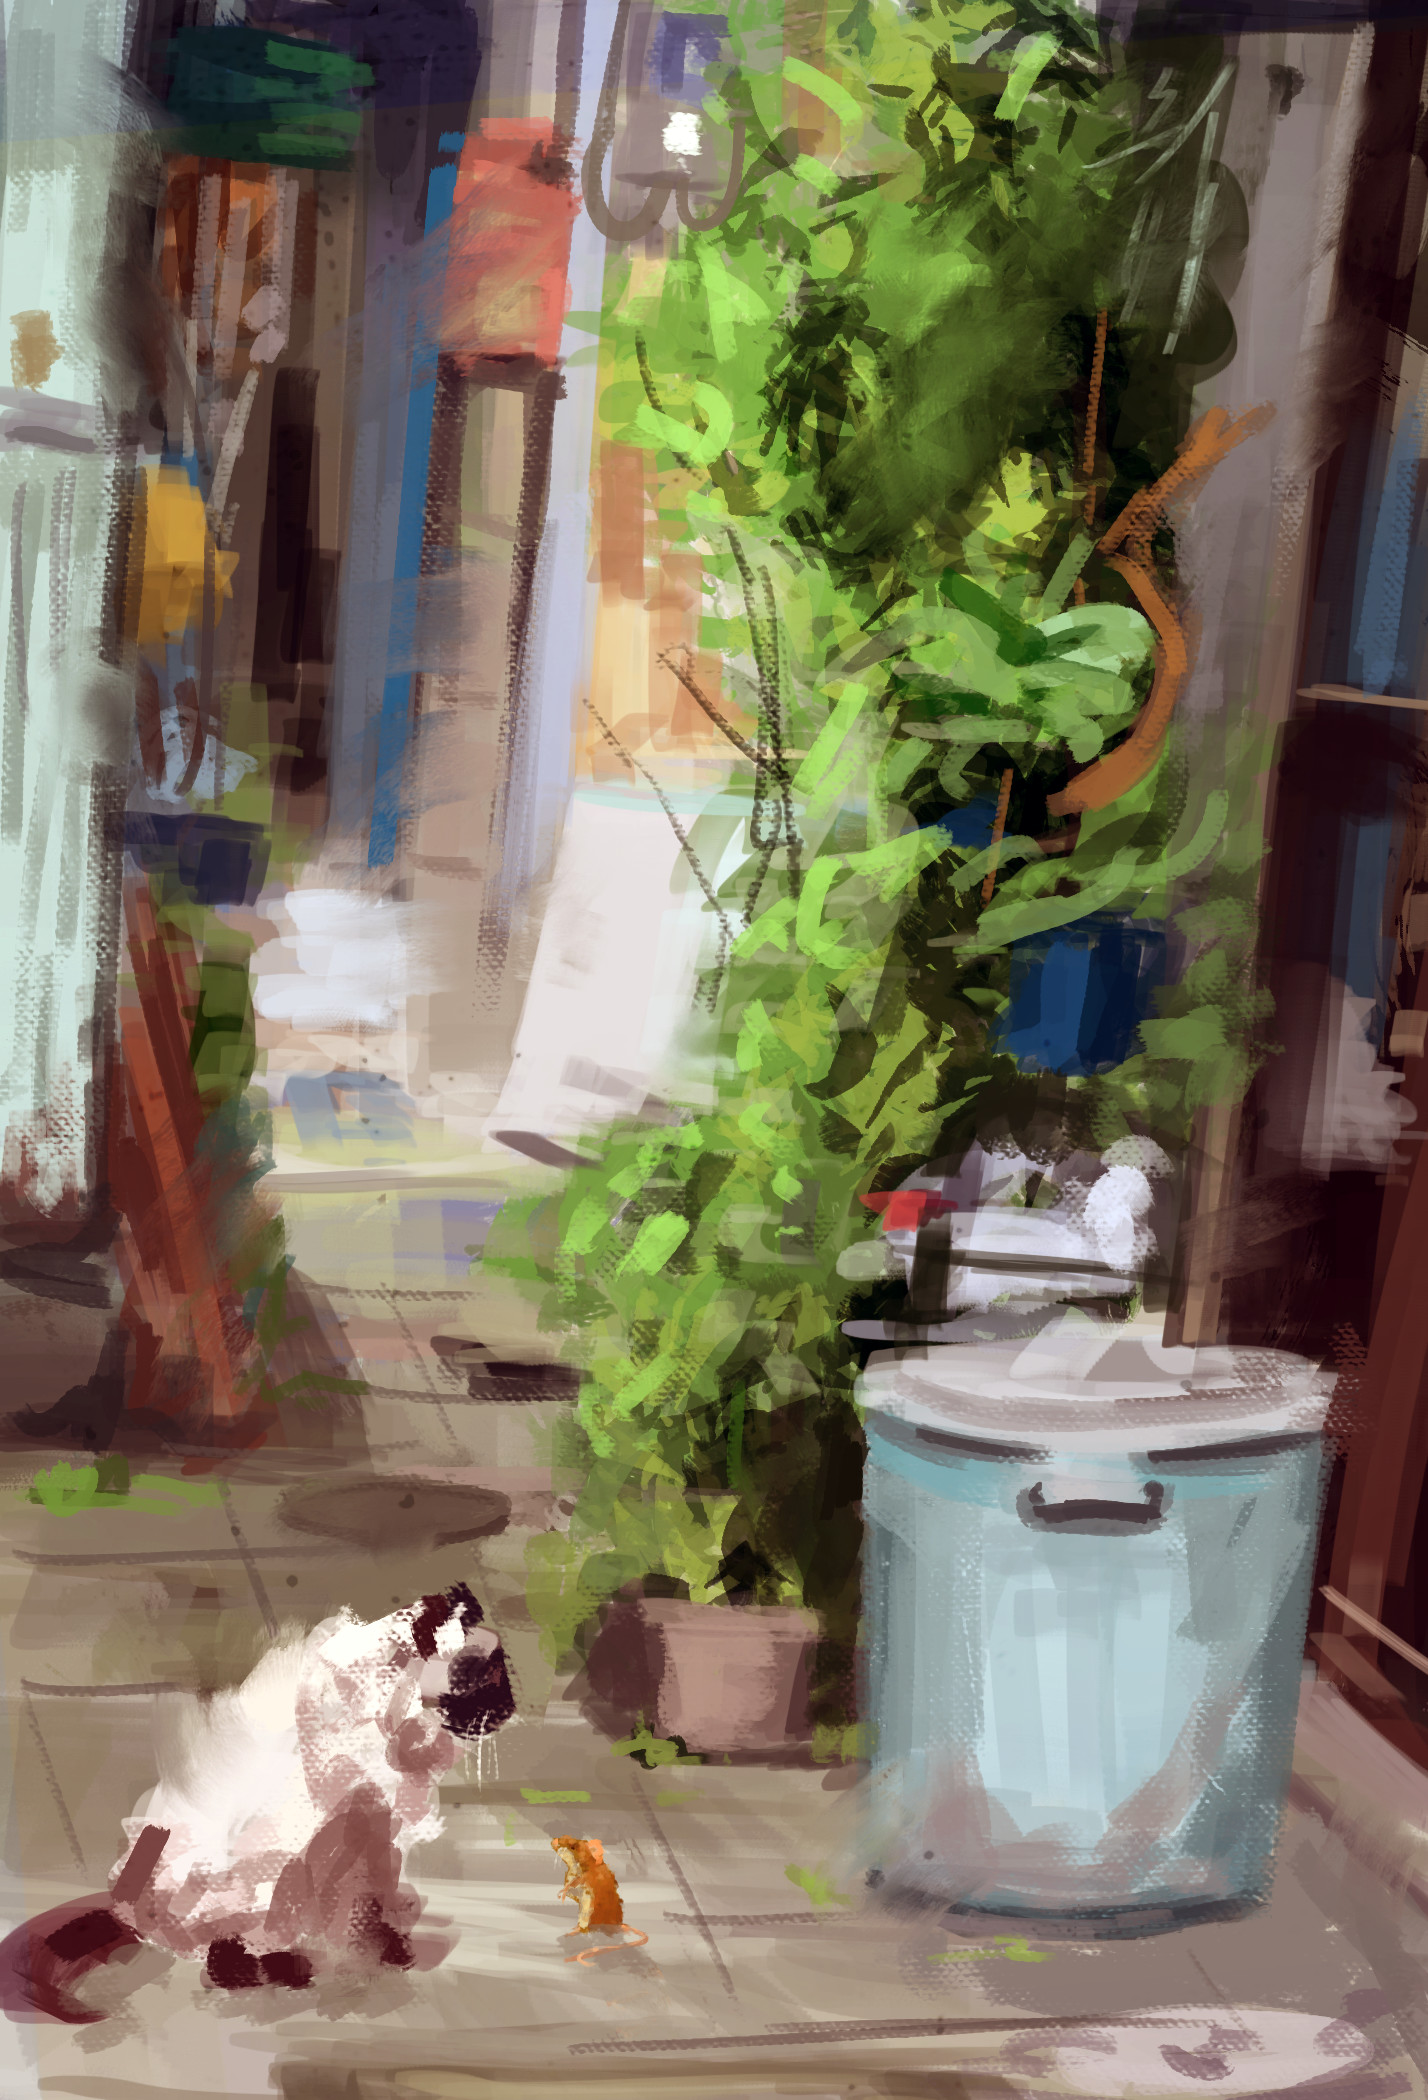 Jack dowell cat alley finished study